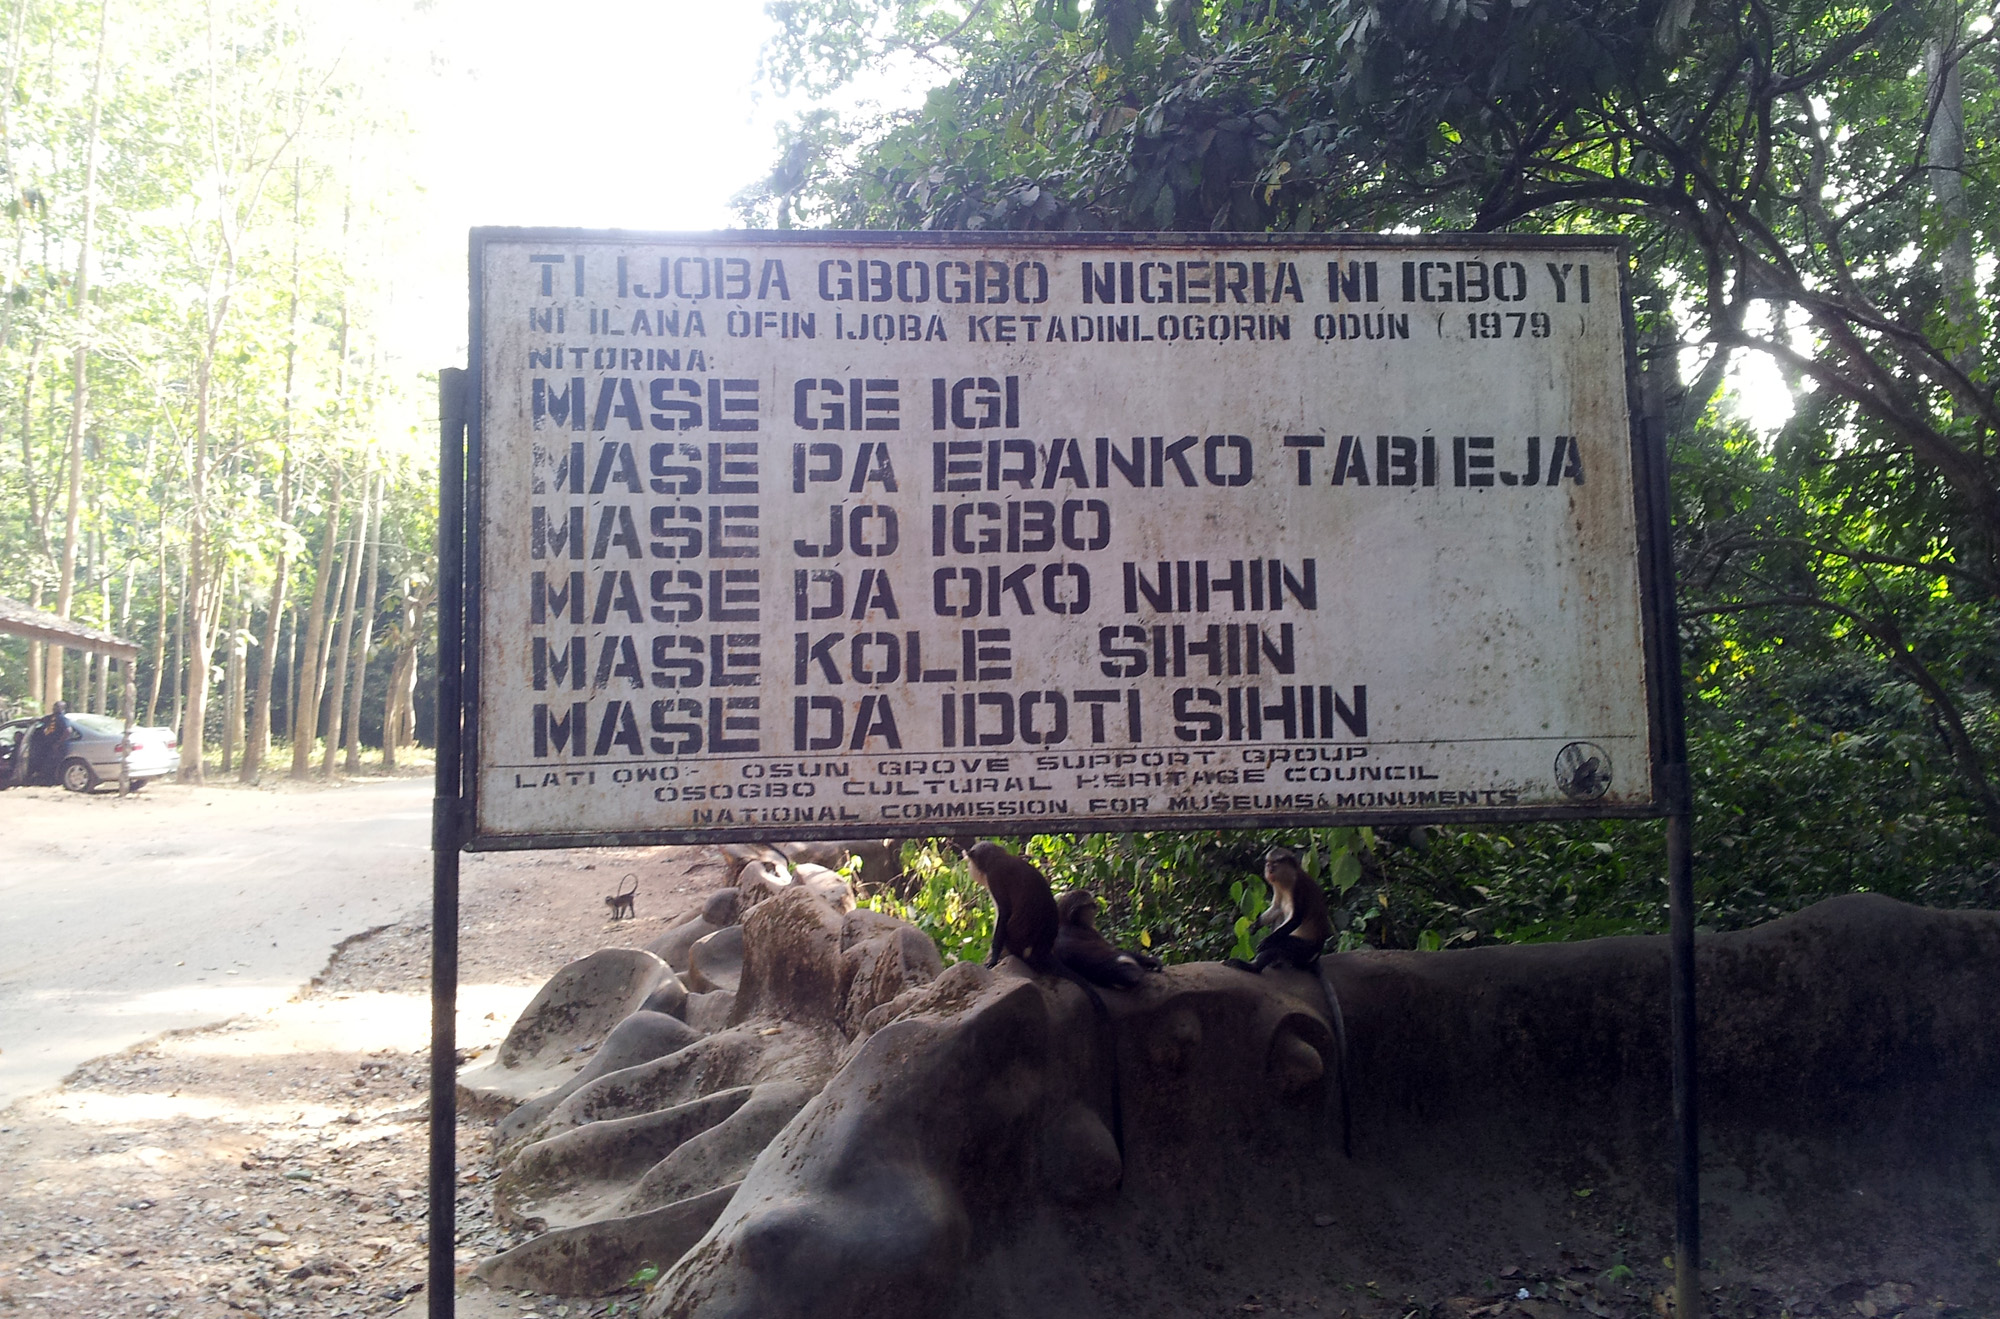 What better not to do in the Sacred Grove of Òṣogbo.©Orisha Image